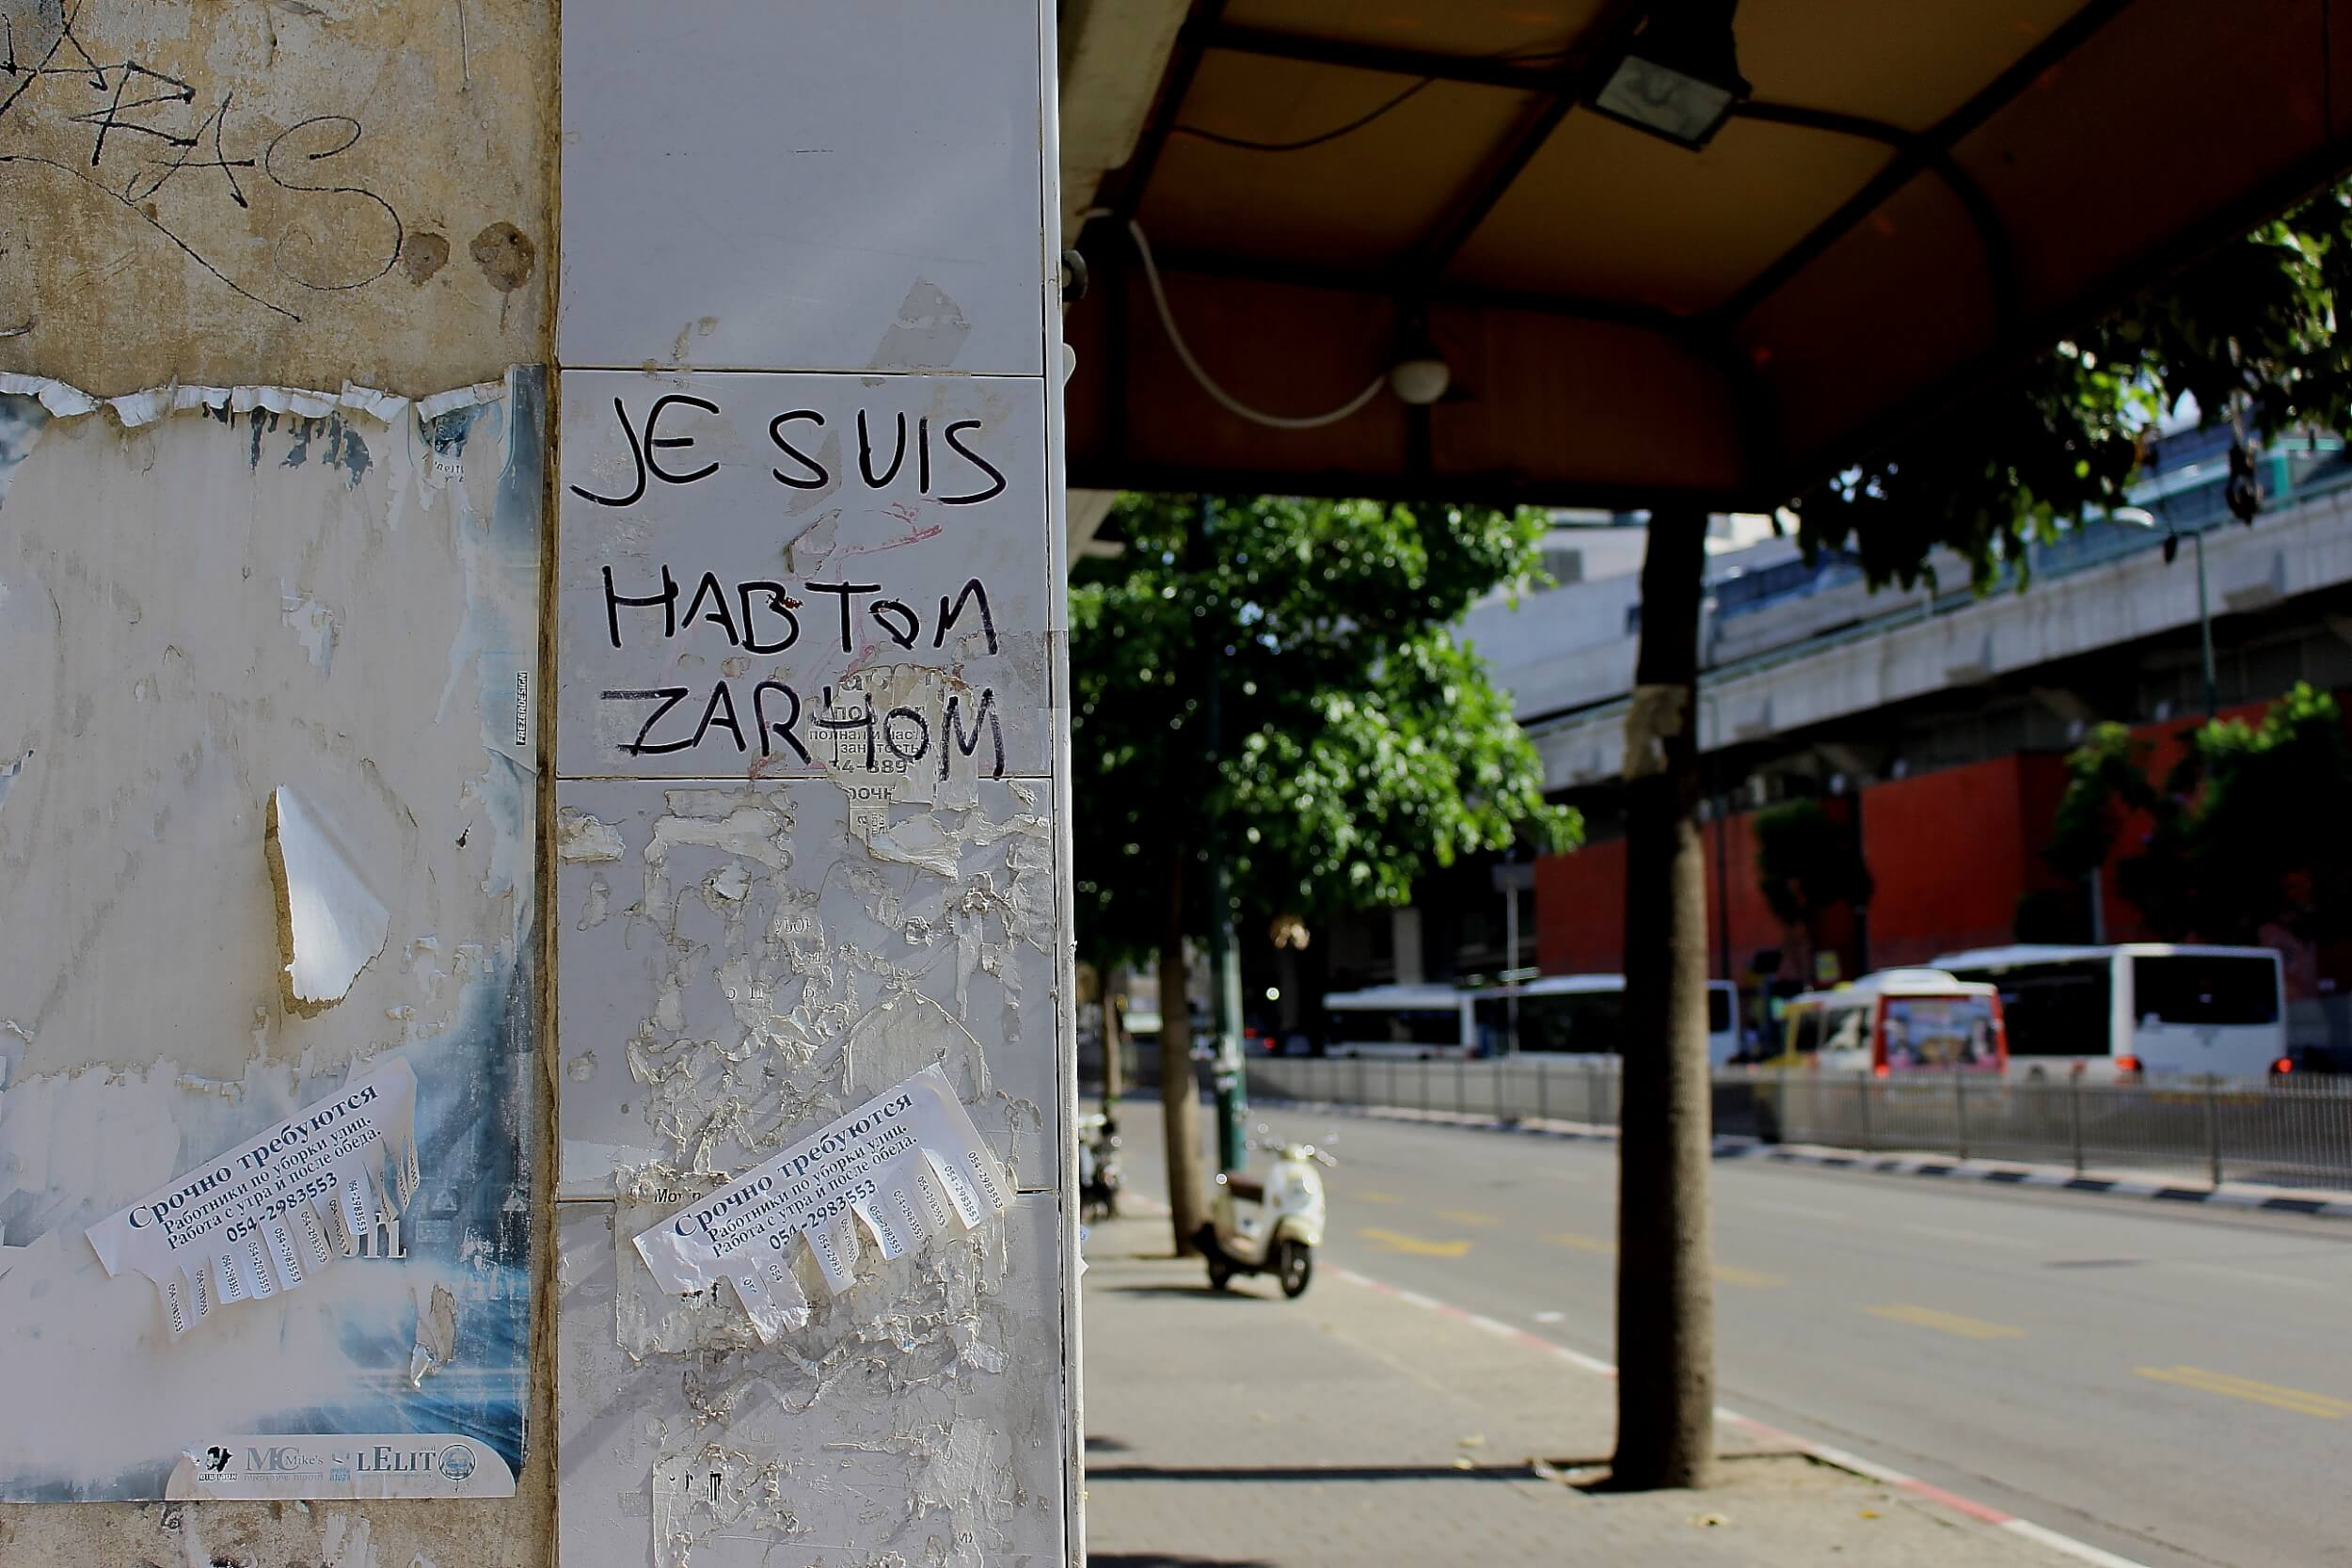 The words Je Suis Habtom Zarhum are scrawled on a wall near Tel Aviv's bus station in homage to the murdered Eritrean asylum seeker. (Photo: Matthew Vickery)